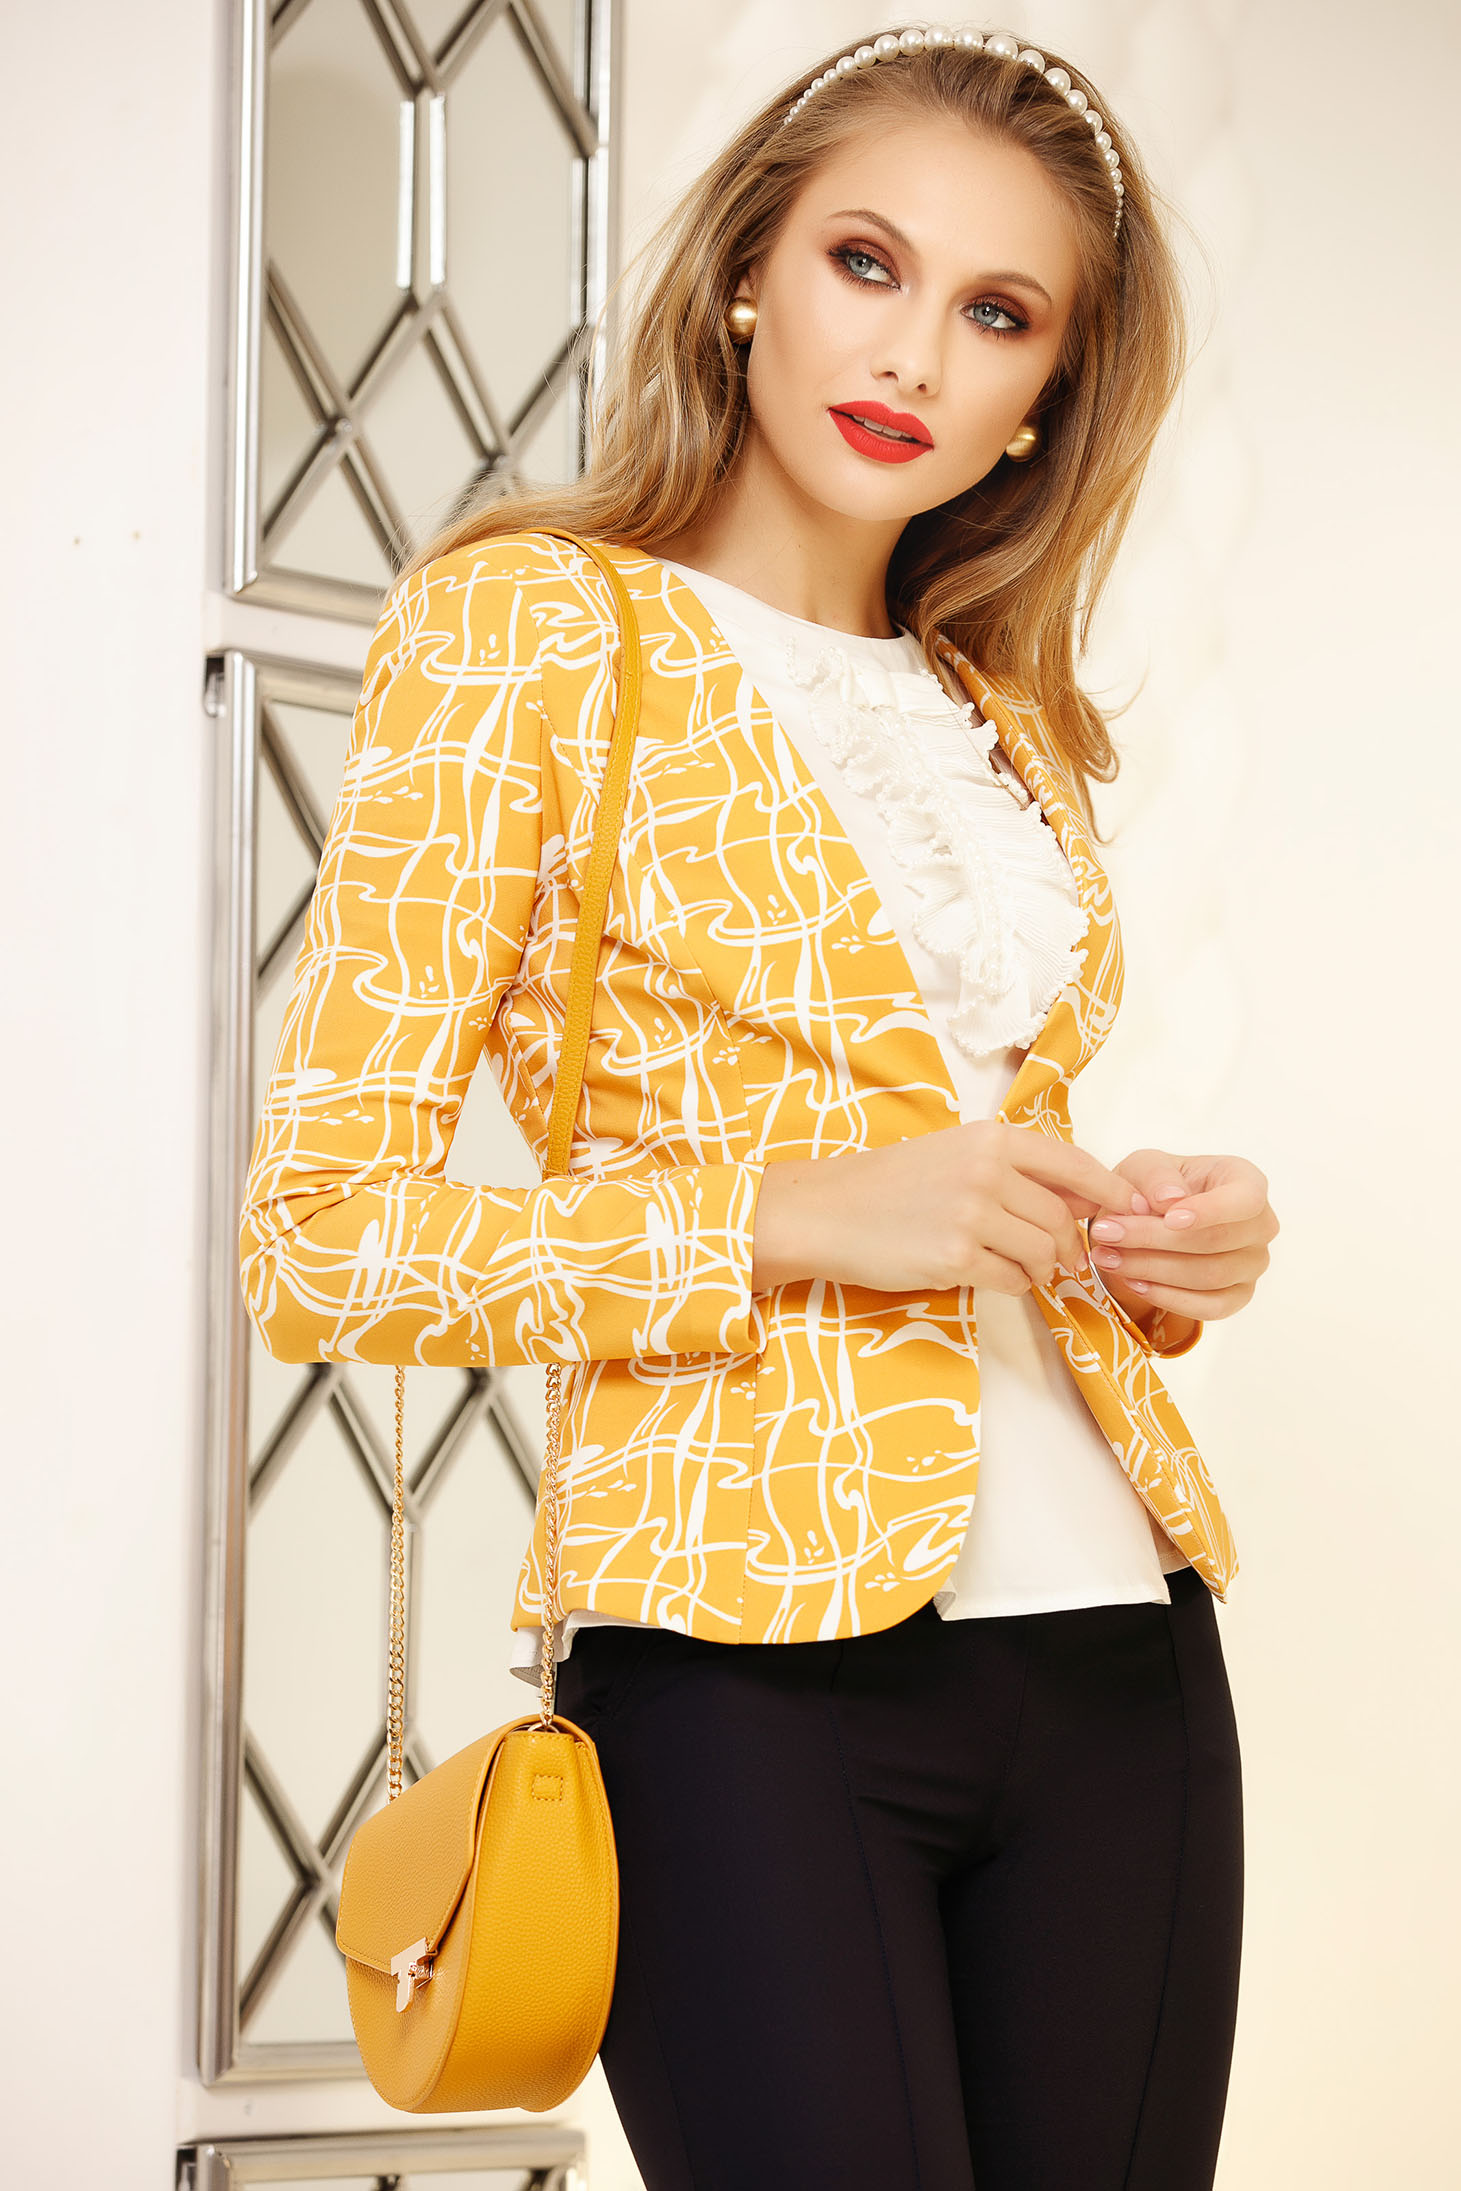 Jacket yellow office tented short cut with graphic print cloth